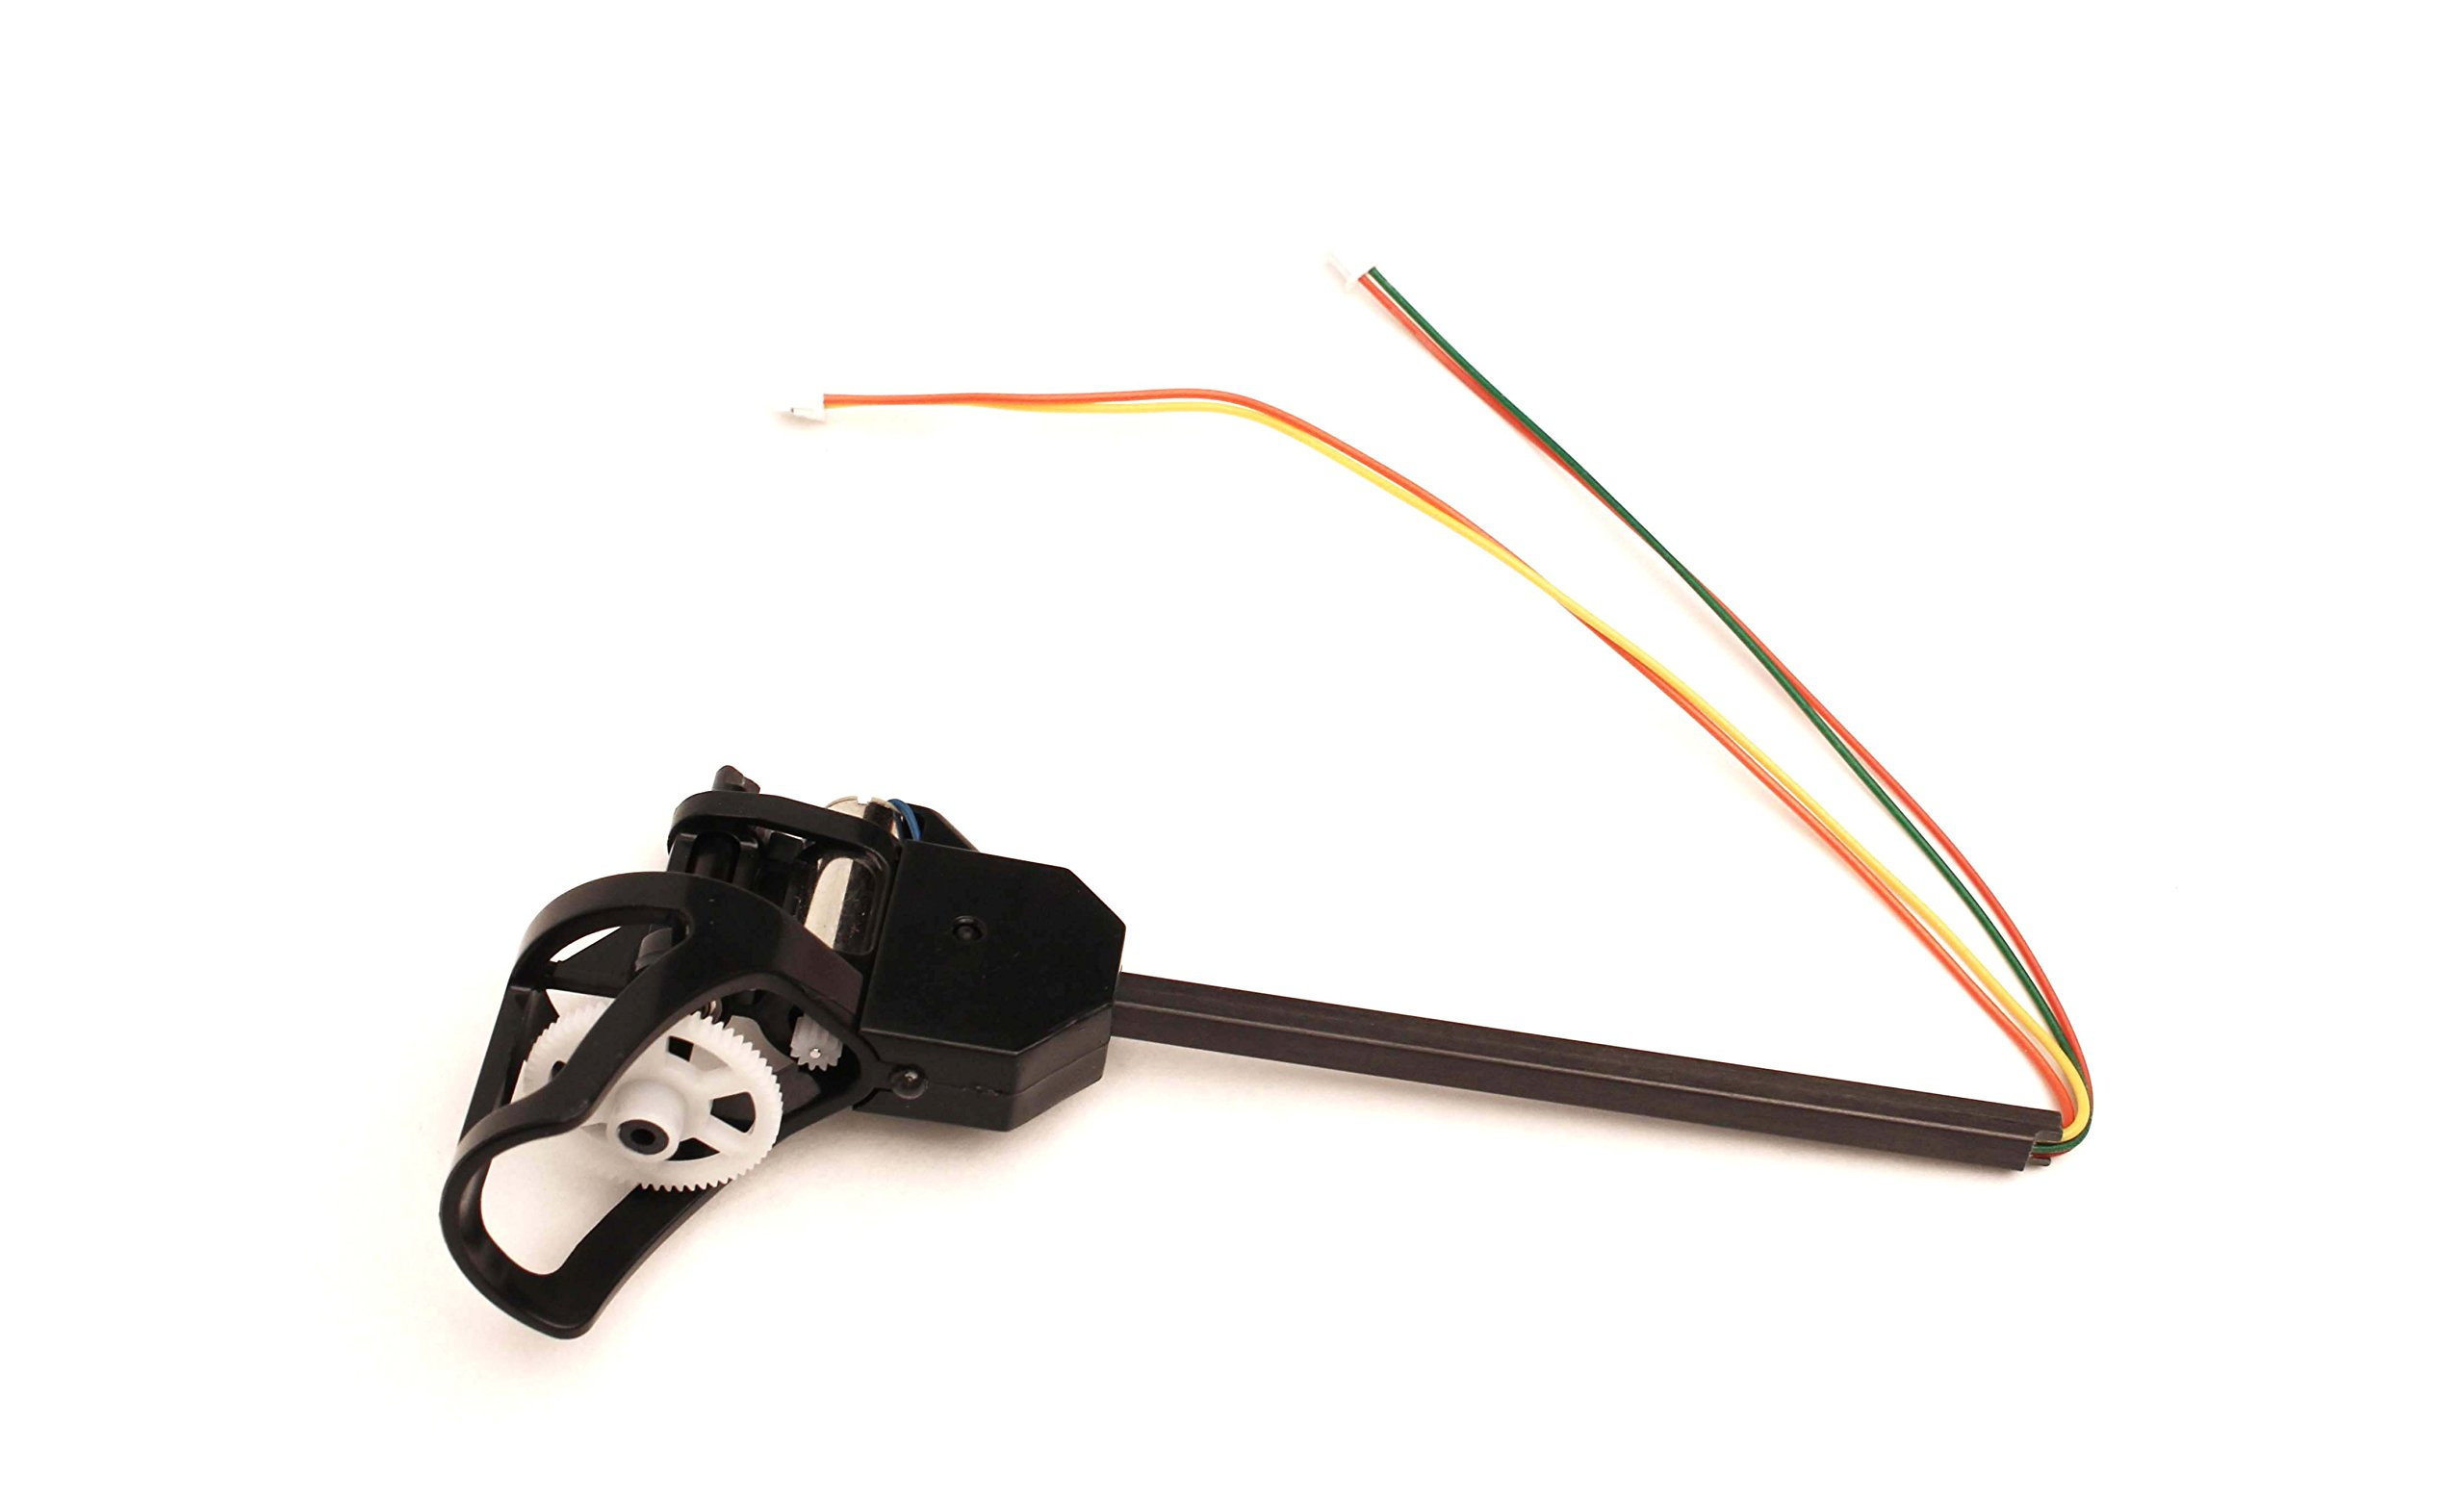 Replacement (CW) Motor Set (Red Light) For Udi Discovery FPV Quad